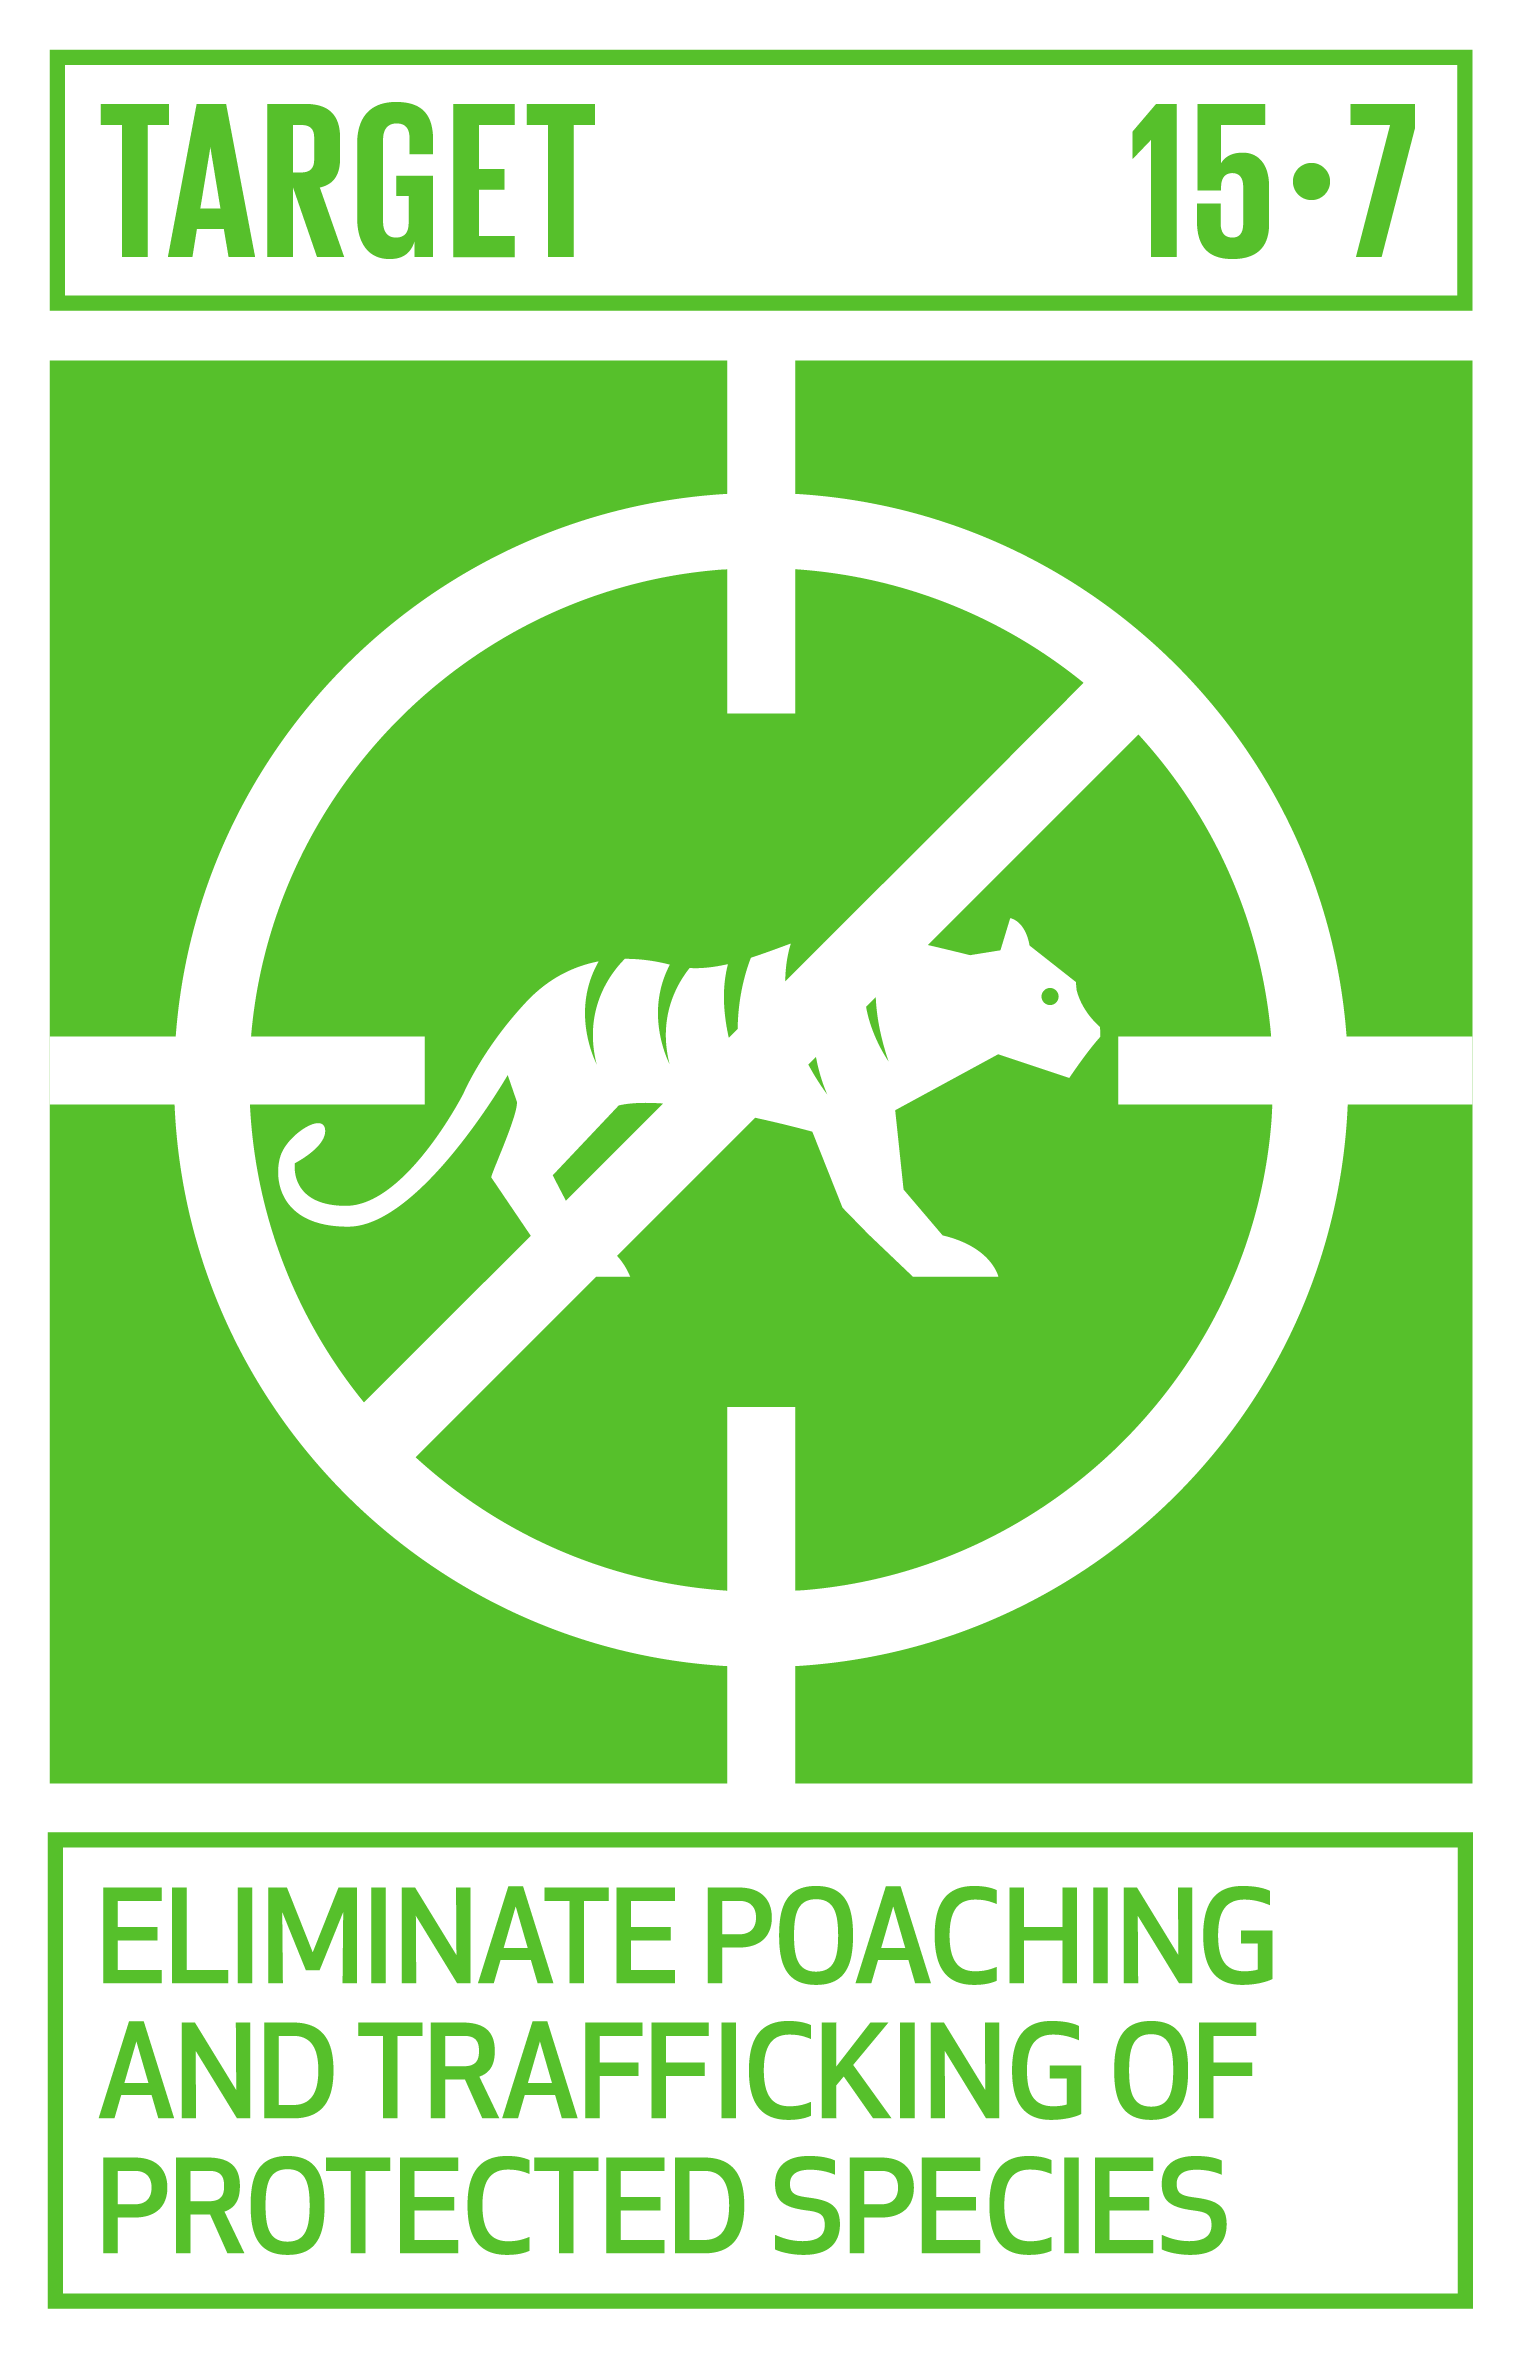 Take urgent action to end poaching and trafficking of protected species of flora and fauna and address both demand and supply of illegal wildlife products.   INDICATOR    15.7.1  Proportion of traded wildlife that was poached or illicitly trafficked